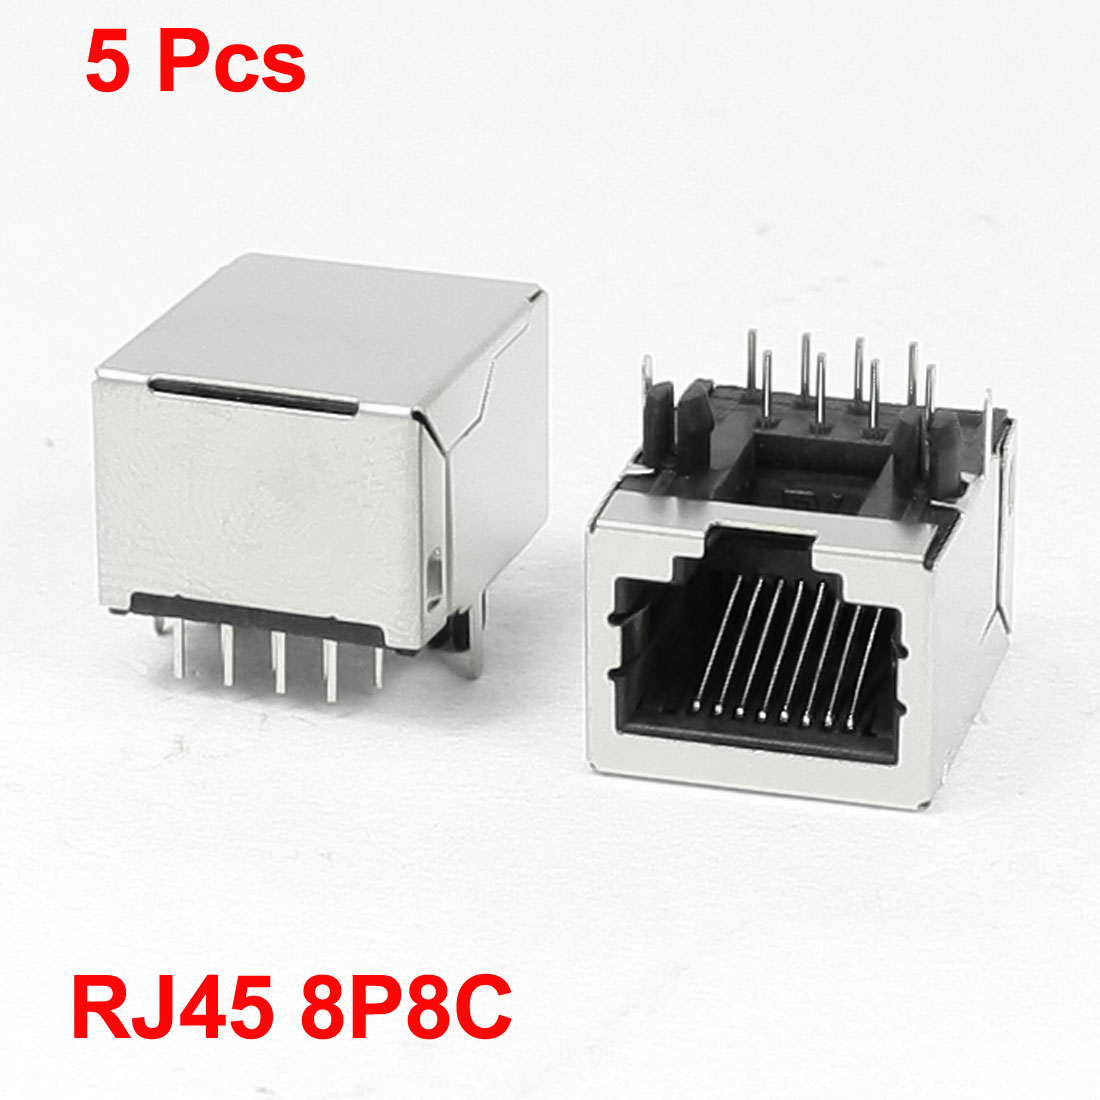 PCB Mounting Right Angle Pins 8P8C RJ45 Jacks LAN Sockets 5 Pcs